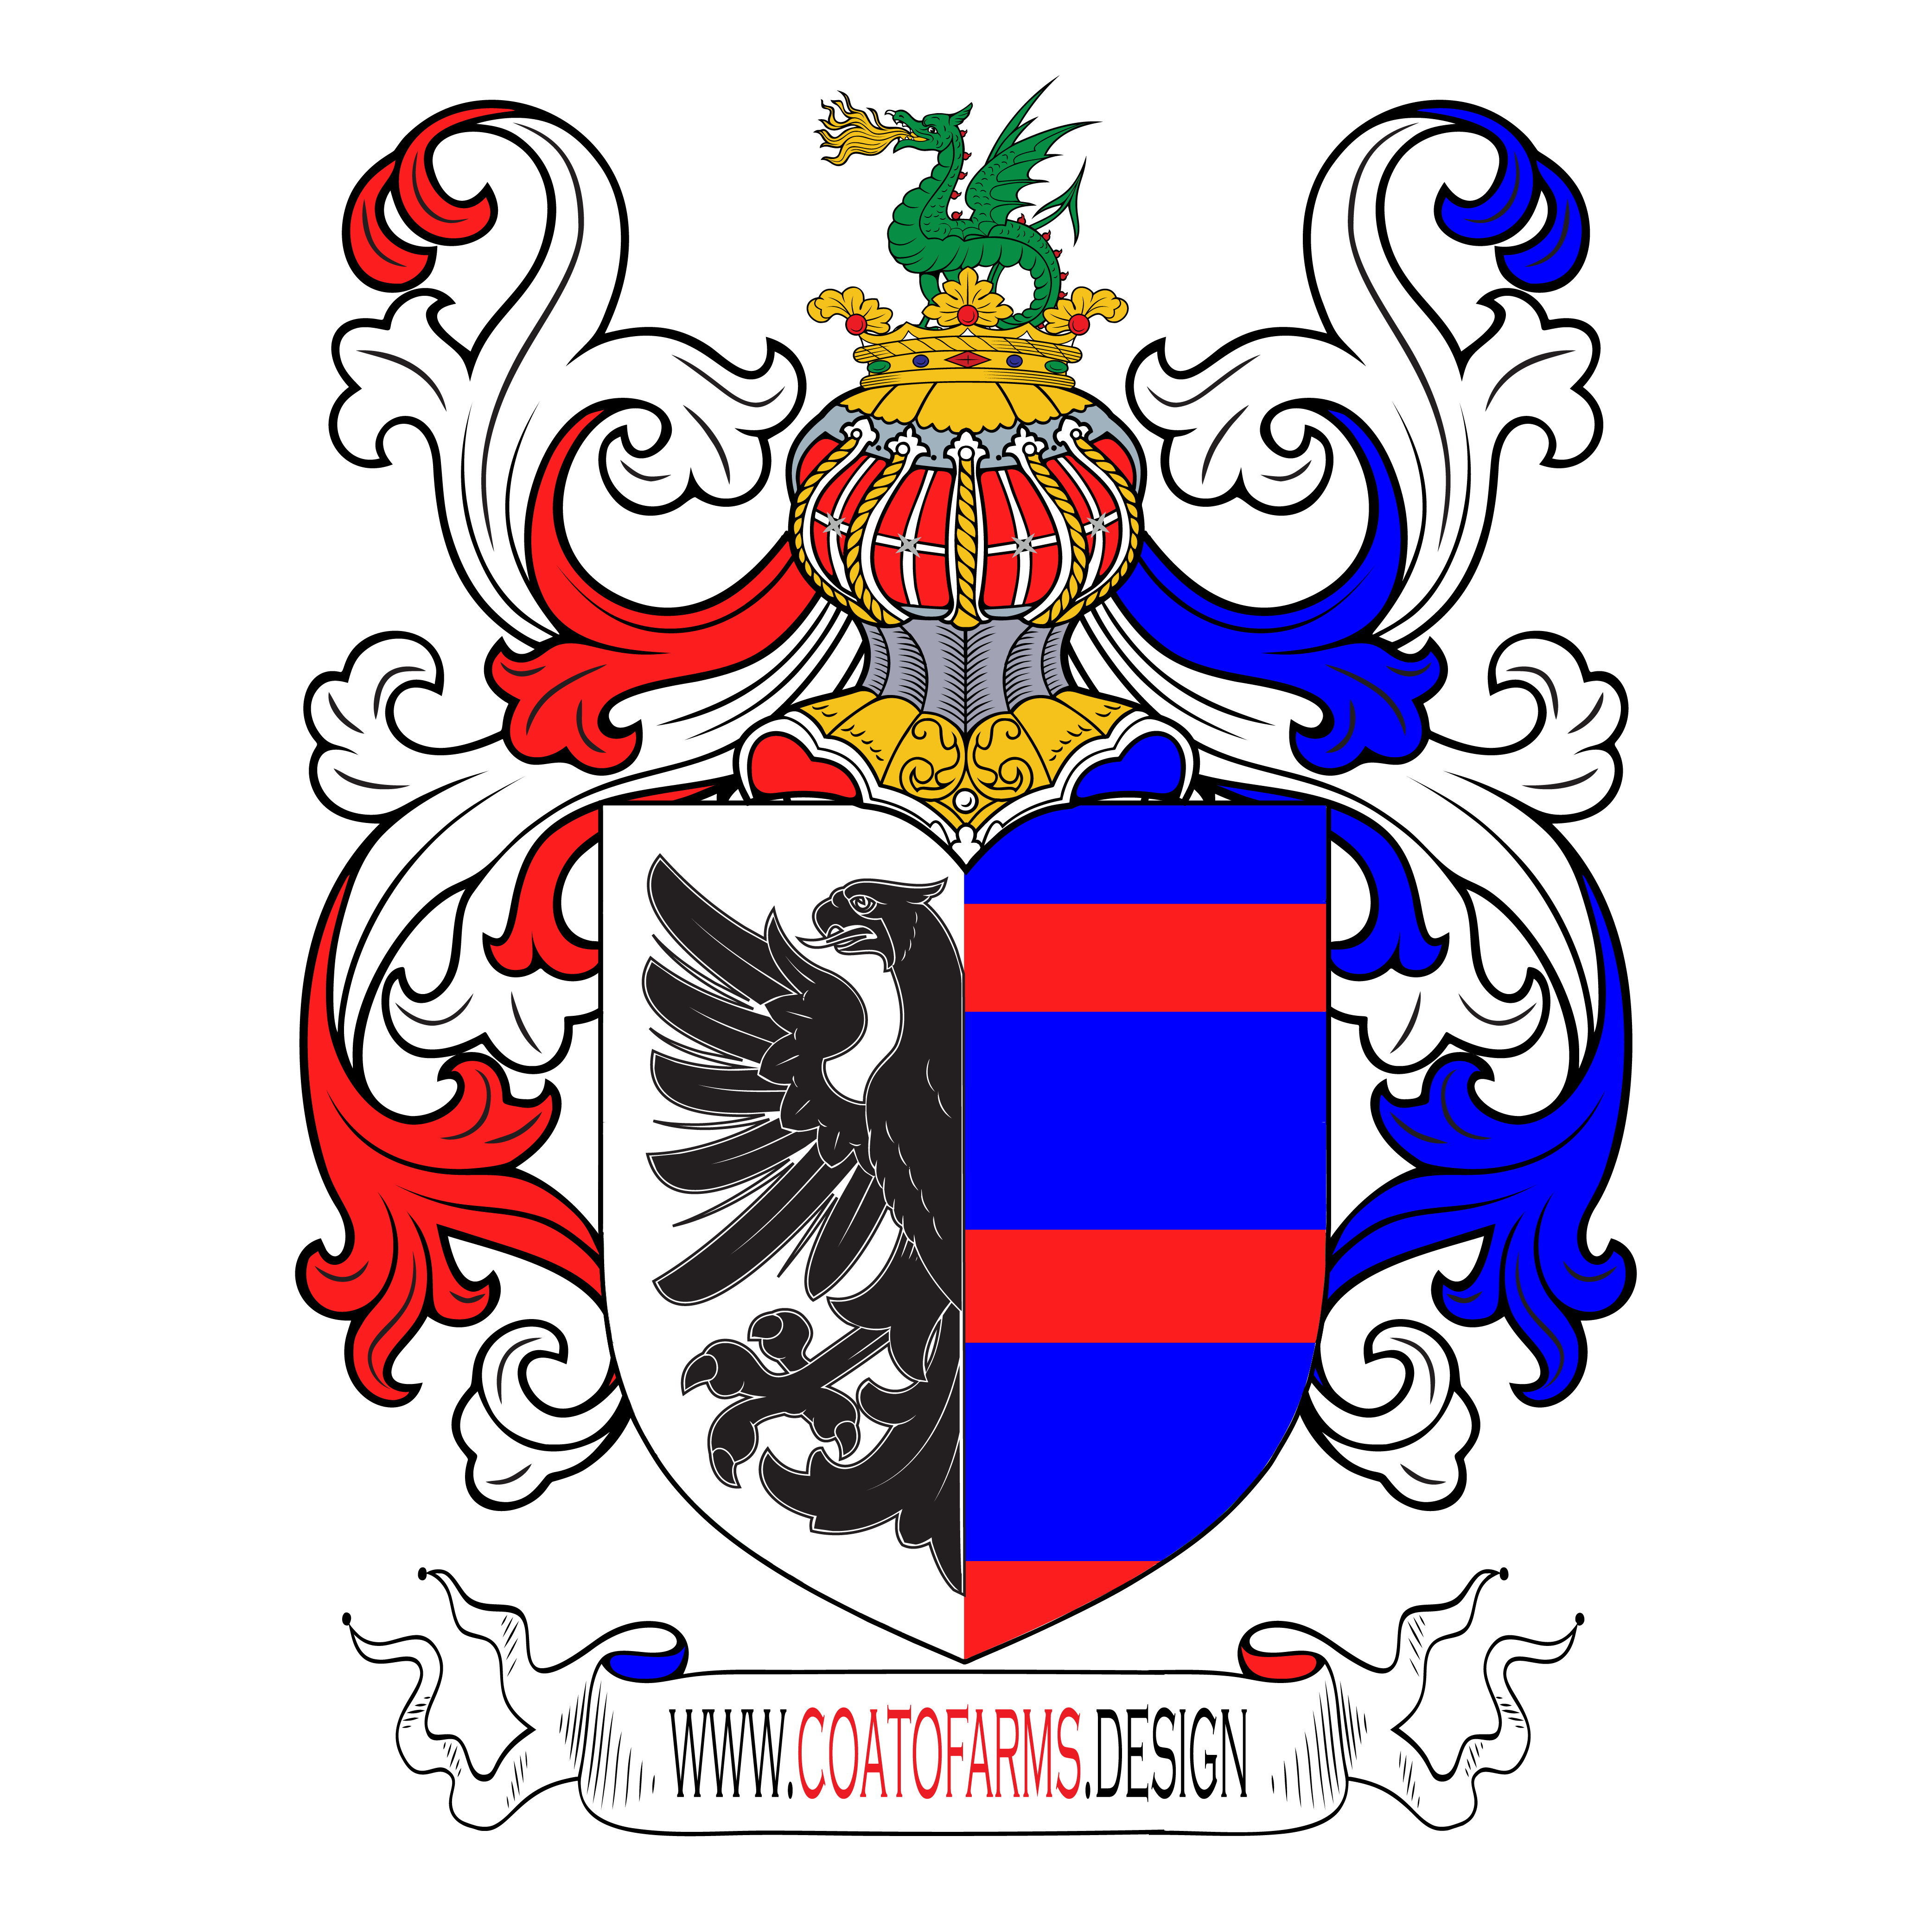 Coat of arms for a secret association from the usa custom coat coat buycottarizona